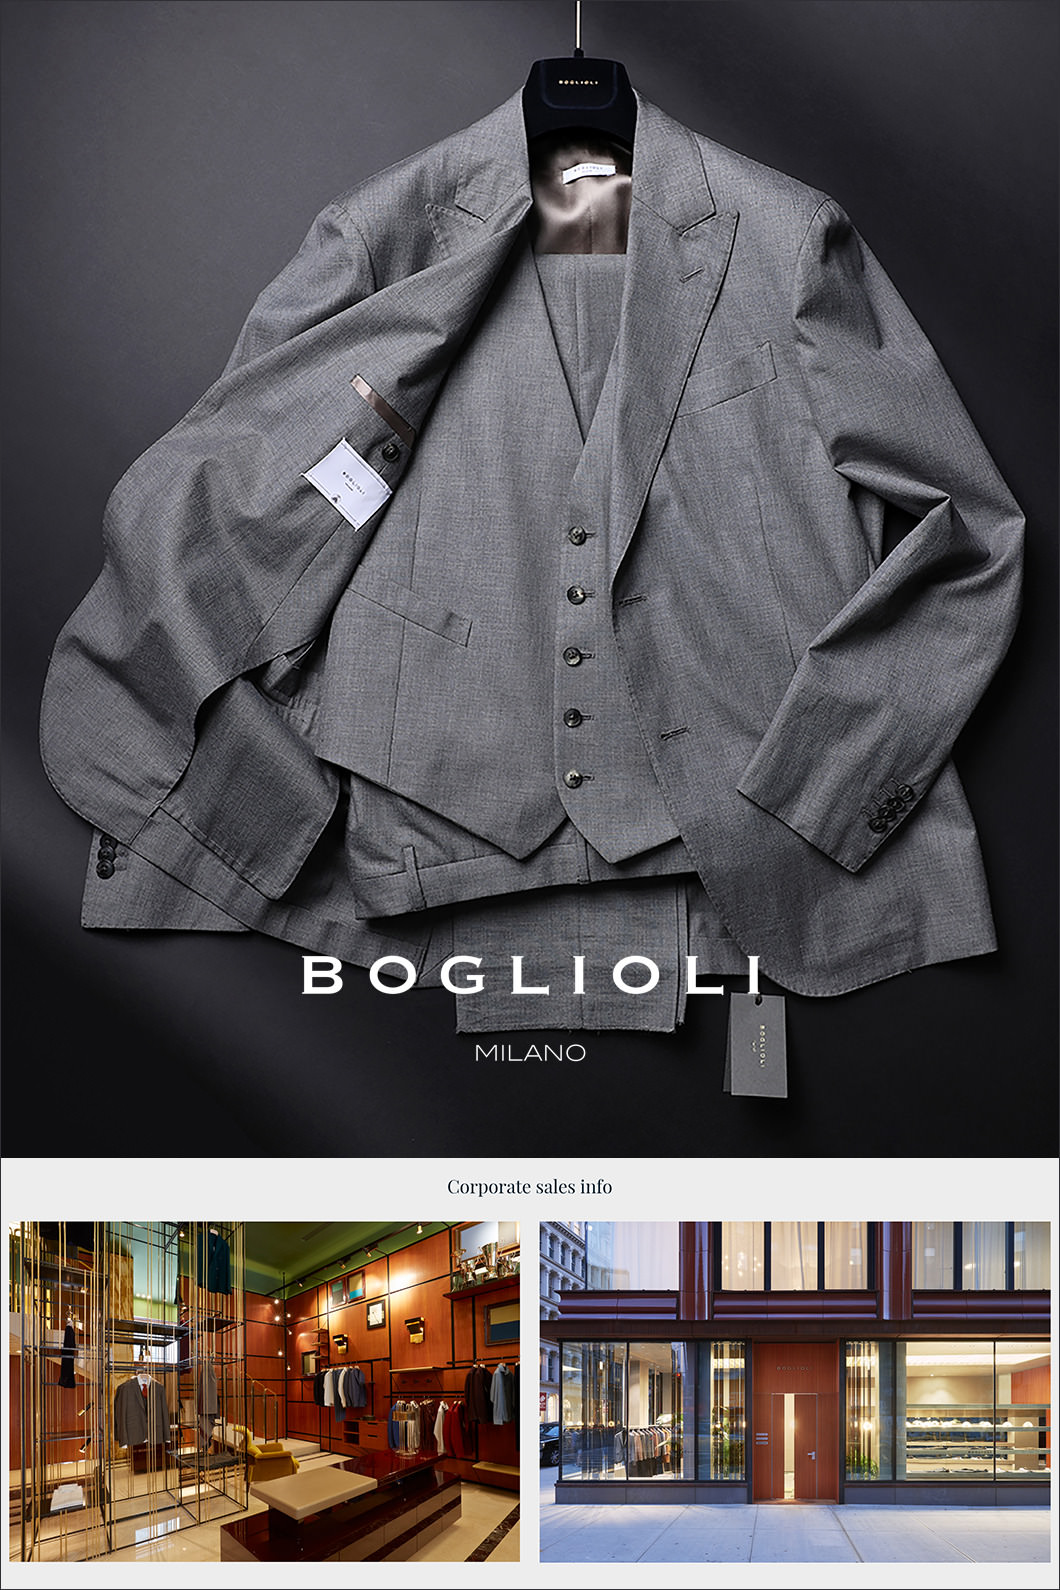 BOGLIOLI THREE PIECE SINGLE SUIT-GRAY[ITALY-Original]비(RAIN) 협찬